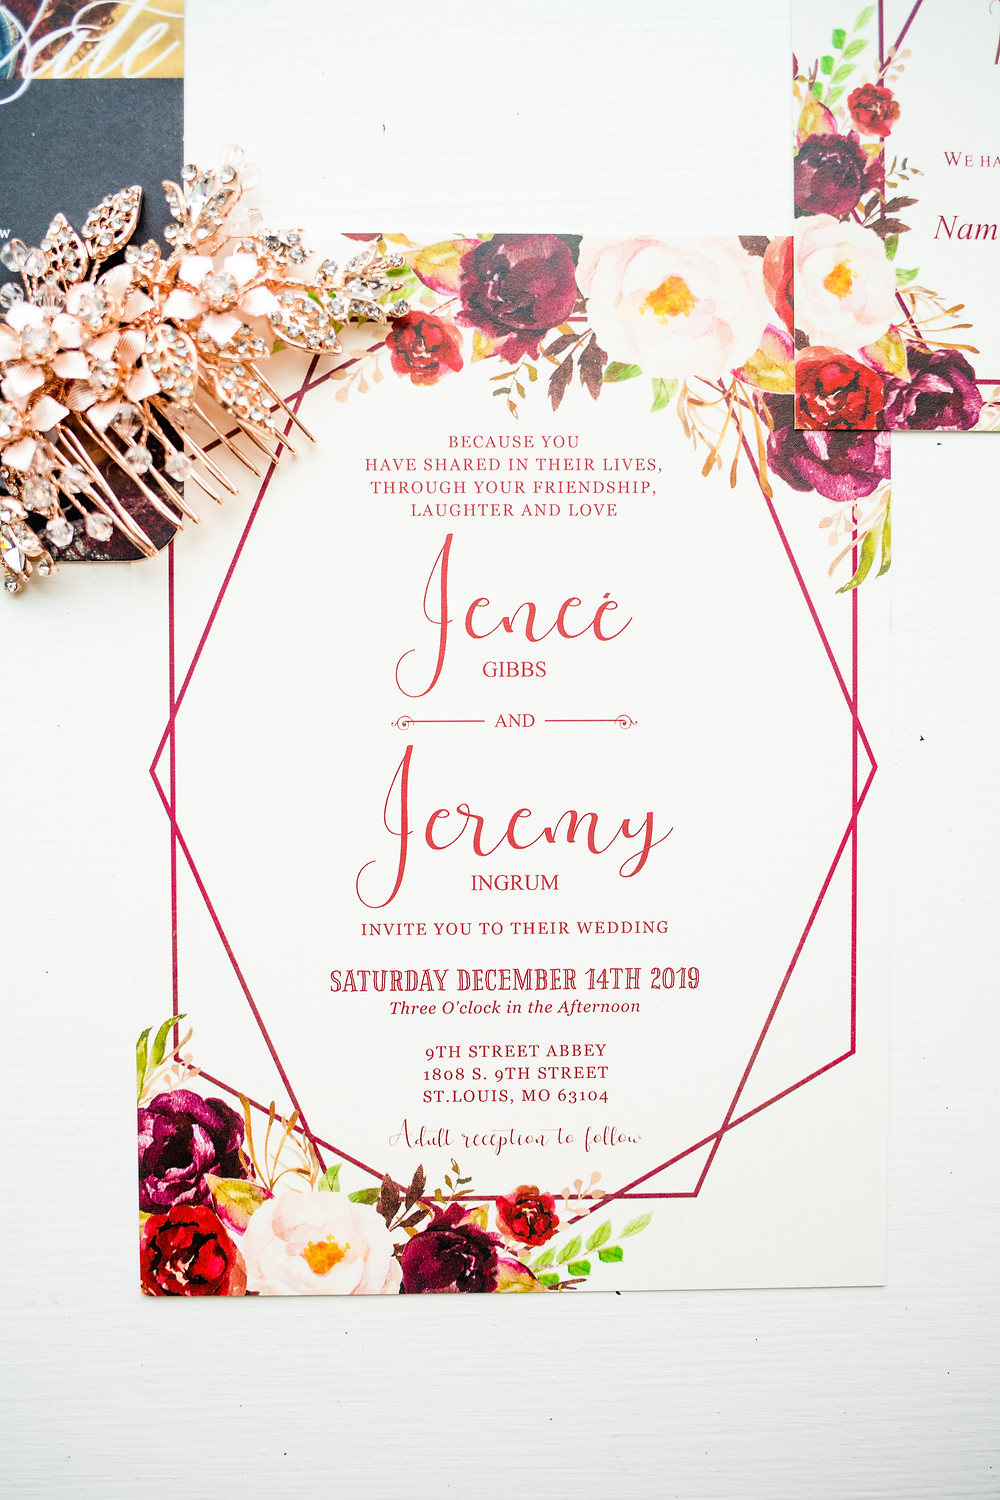 Wedding invitation with flowers on it